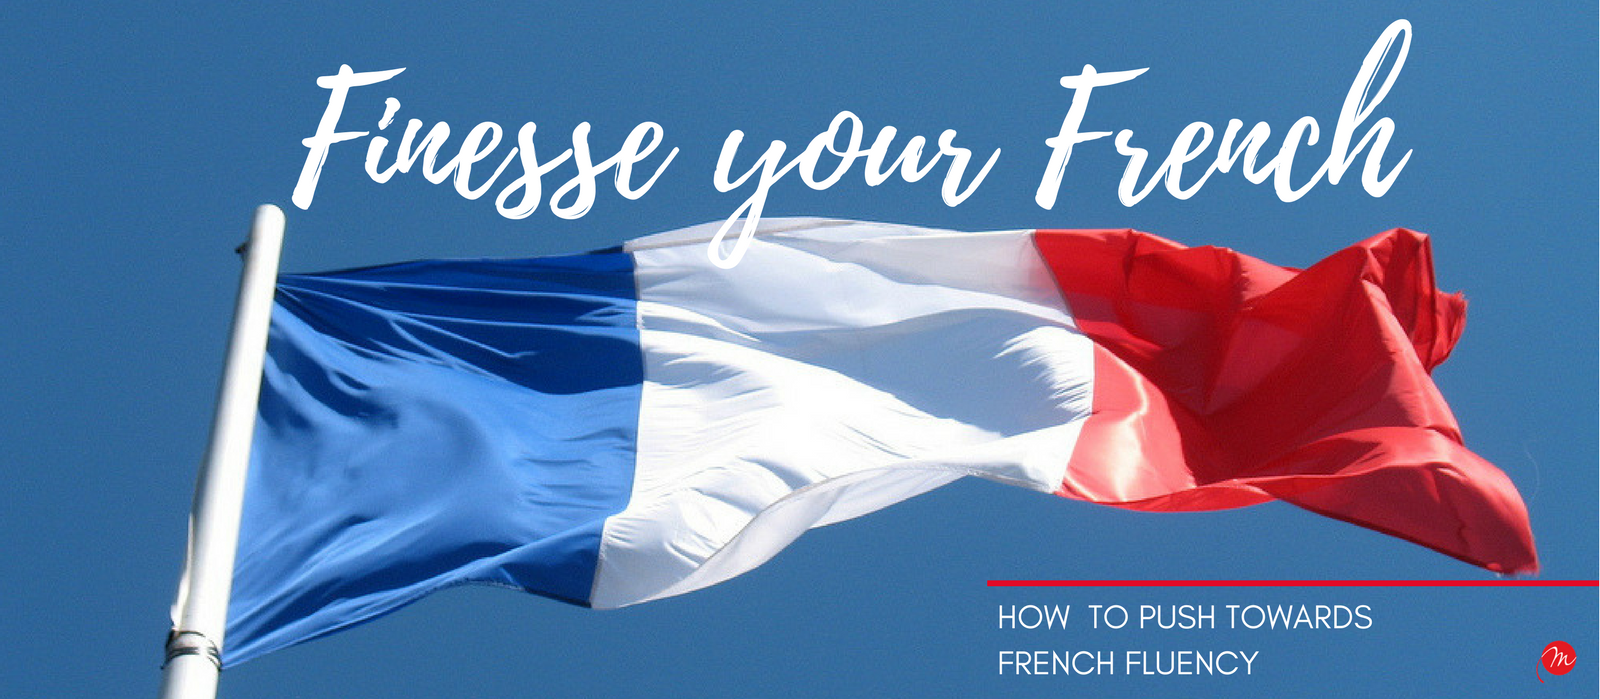 MyFrenchLife™ - MyFrenchLife.org - Finesse your French - How to push towards French fluency - French fluency - Header